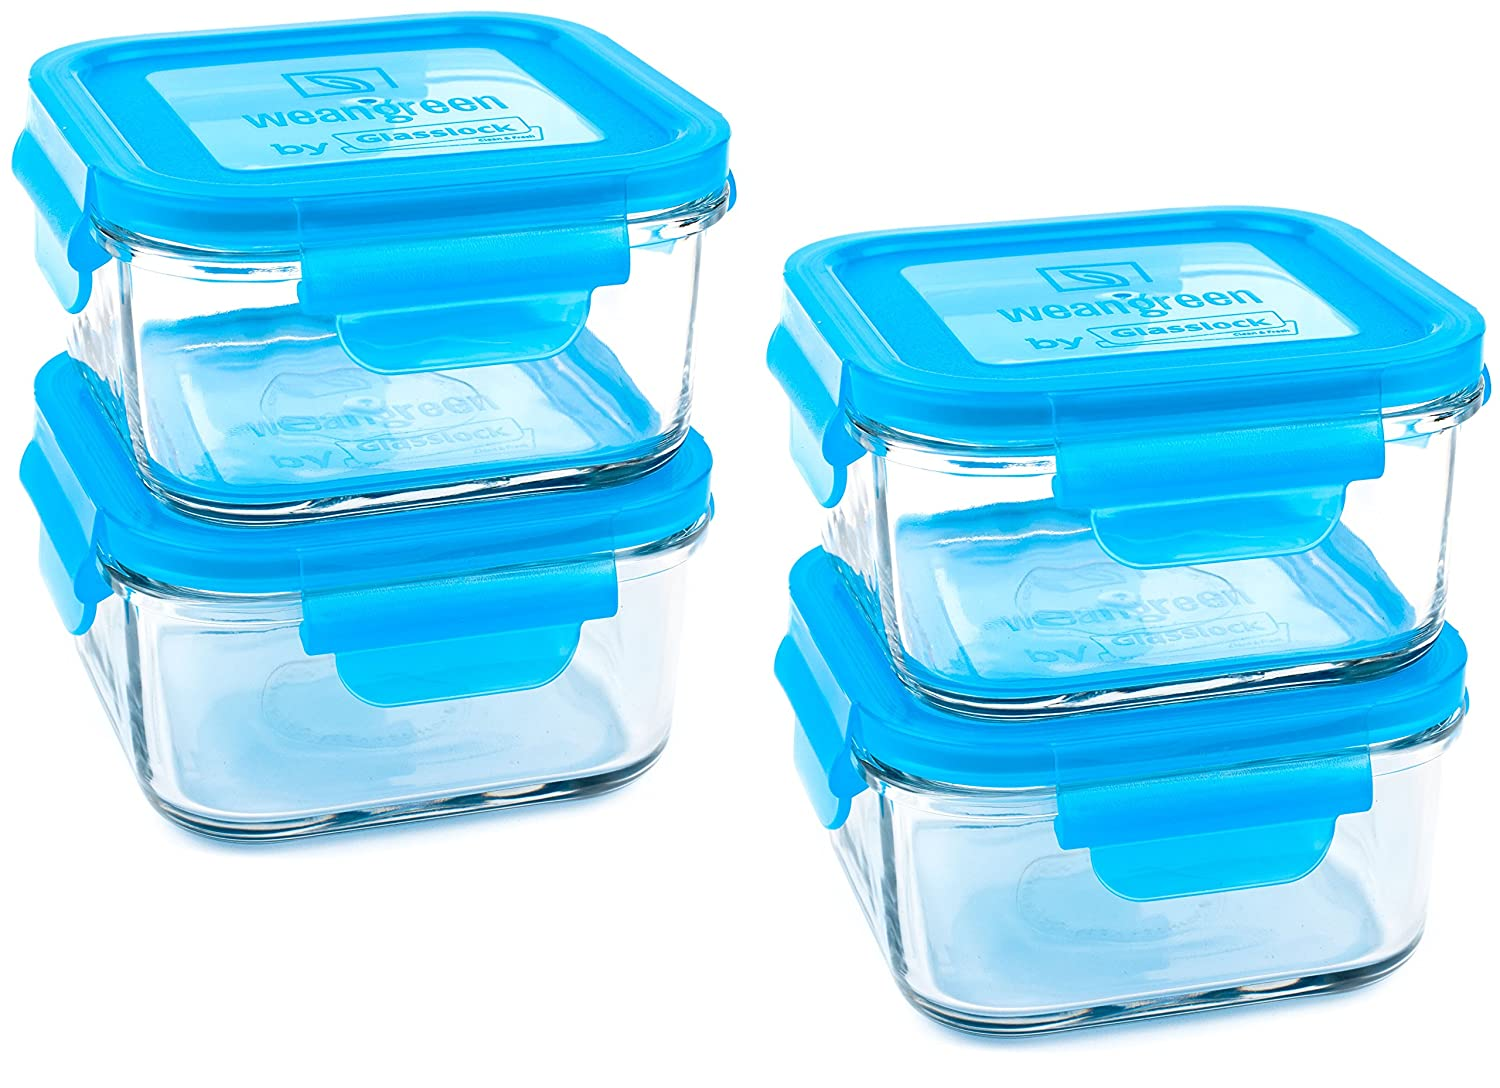 Wean Green Blueberry Lunch Cubes Reusable Food Storage Container Set